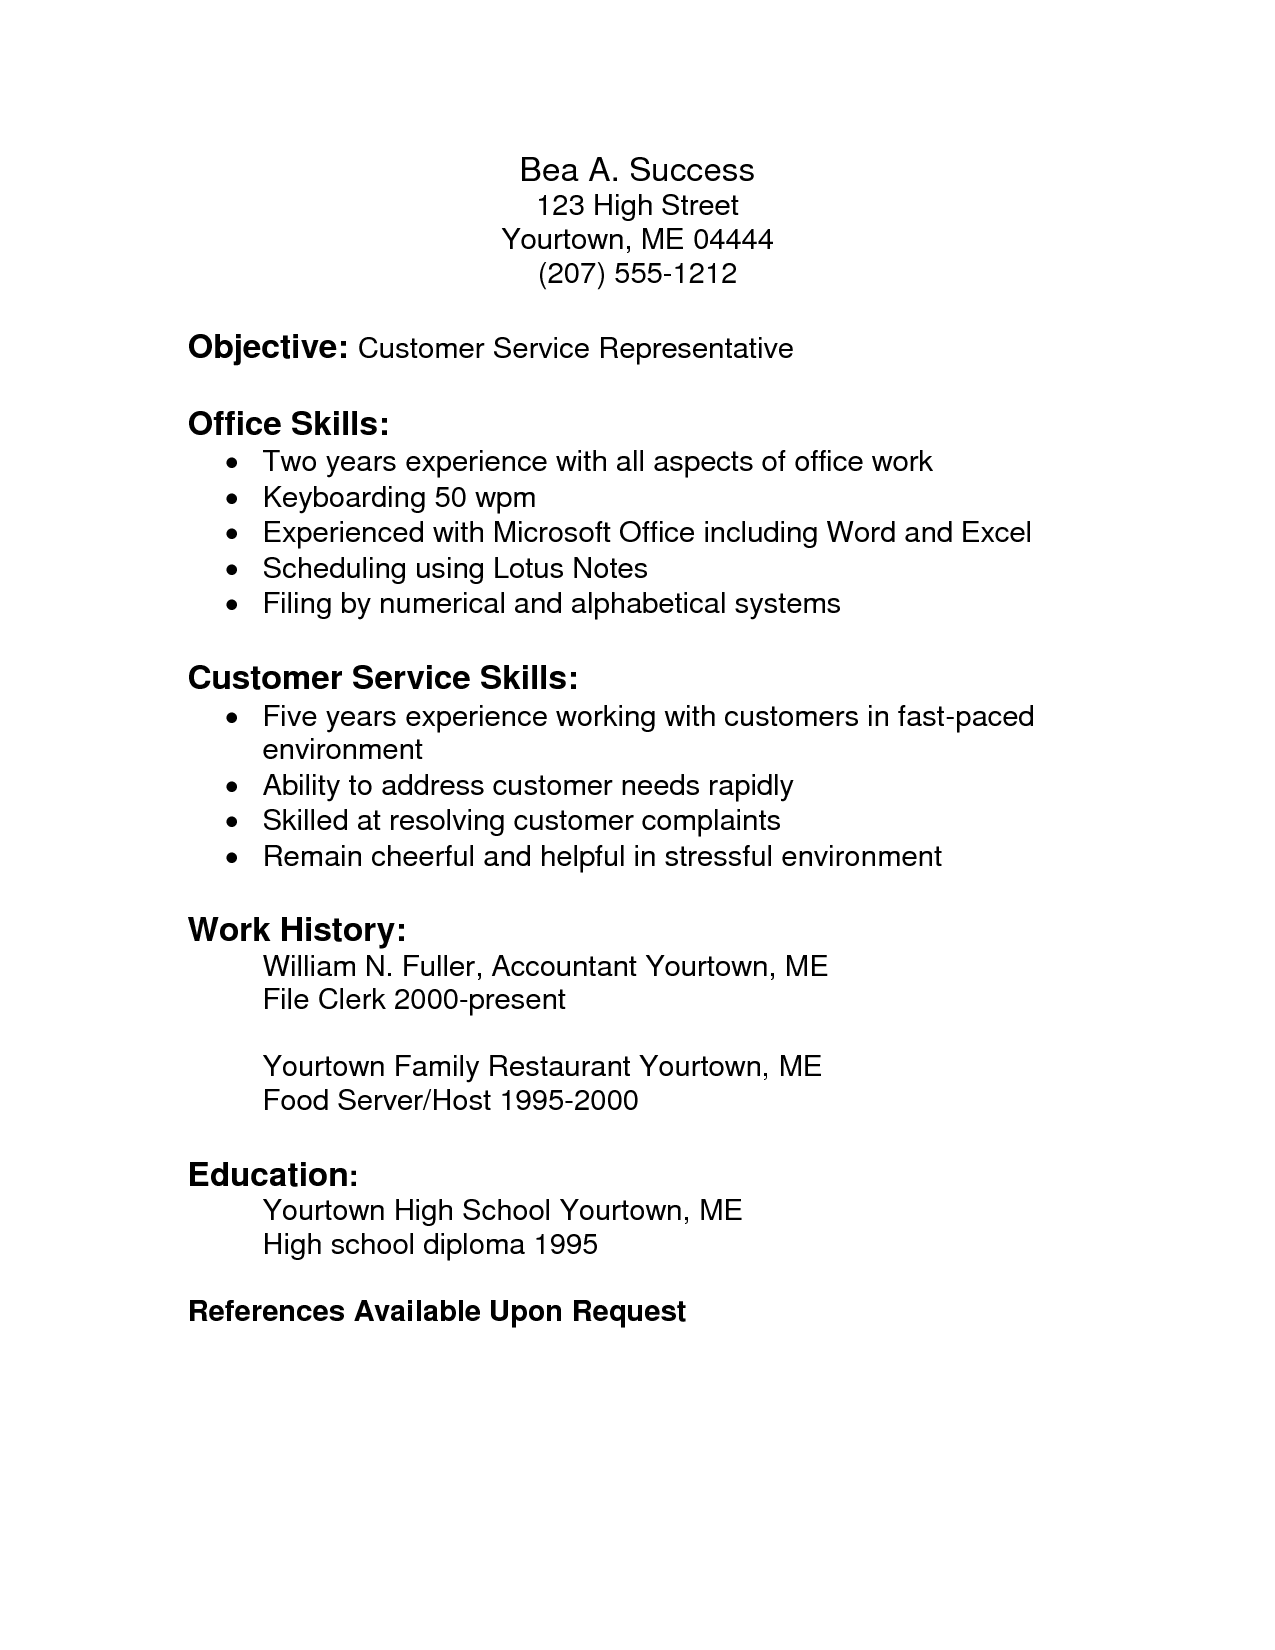 Resume Customer Service Skills Amusing Customer Service Skills Resume Examples  Sample Resume Center Design Inspiration